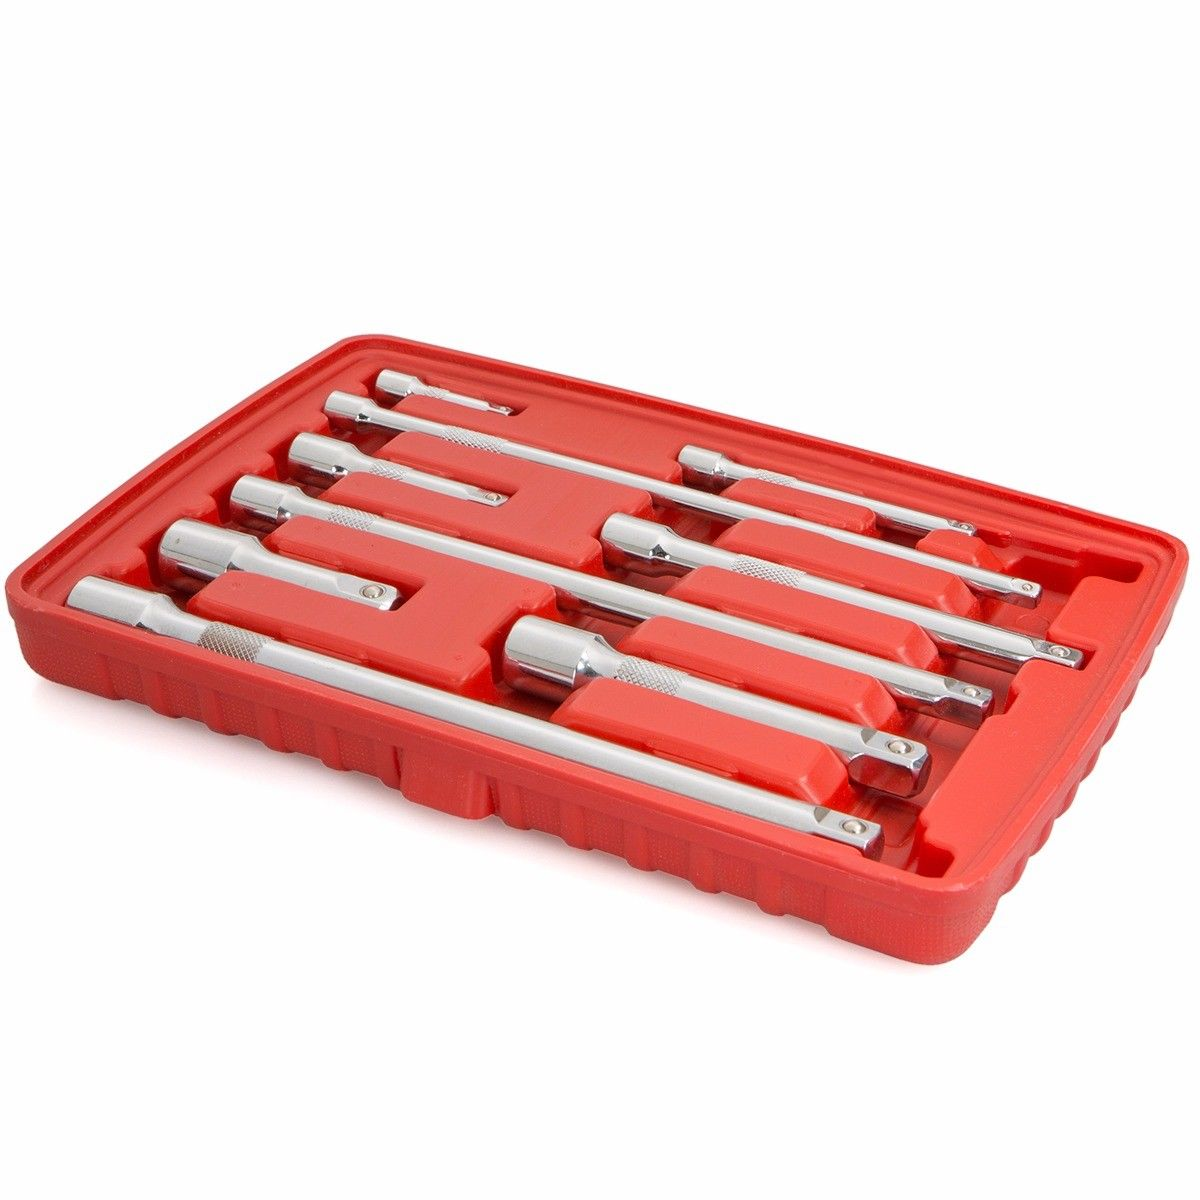 Ratchet Sockets Wrenches Wobble Extension Bar Set, 9PC